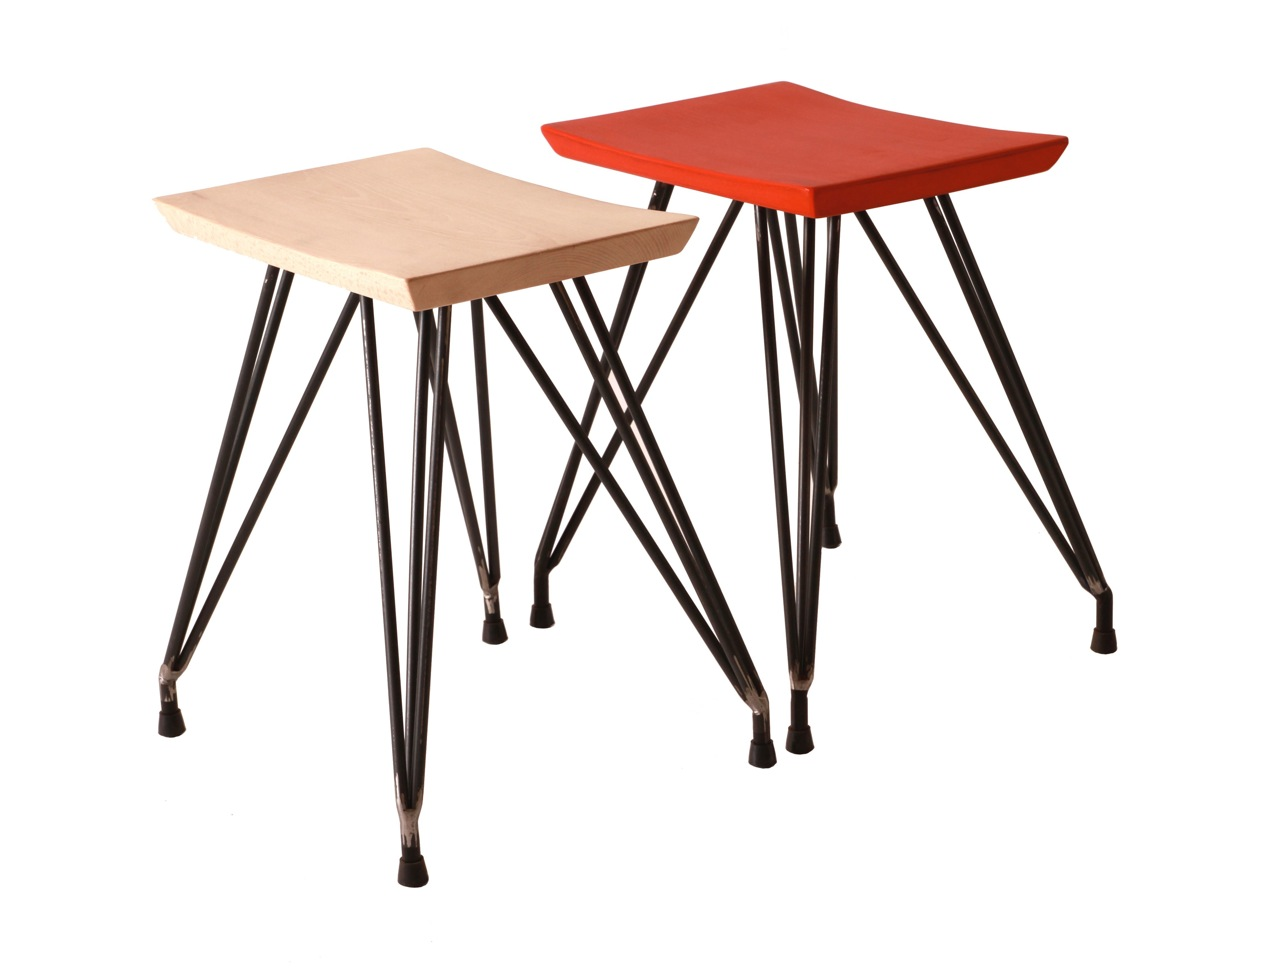 Apollo low stools